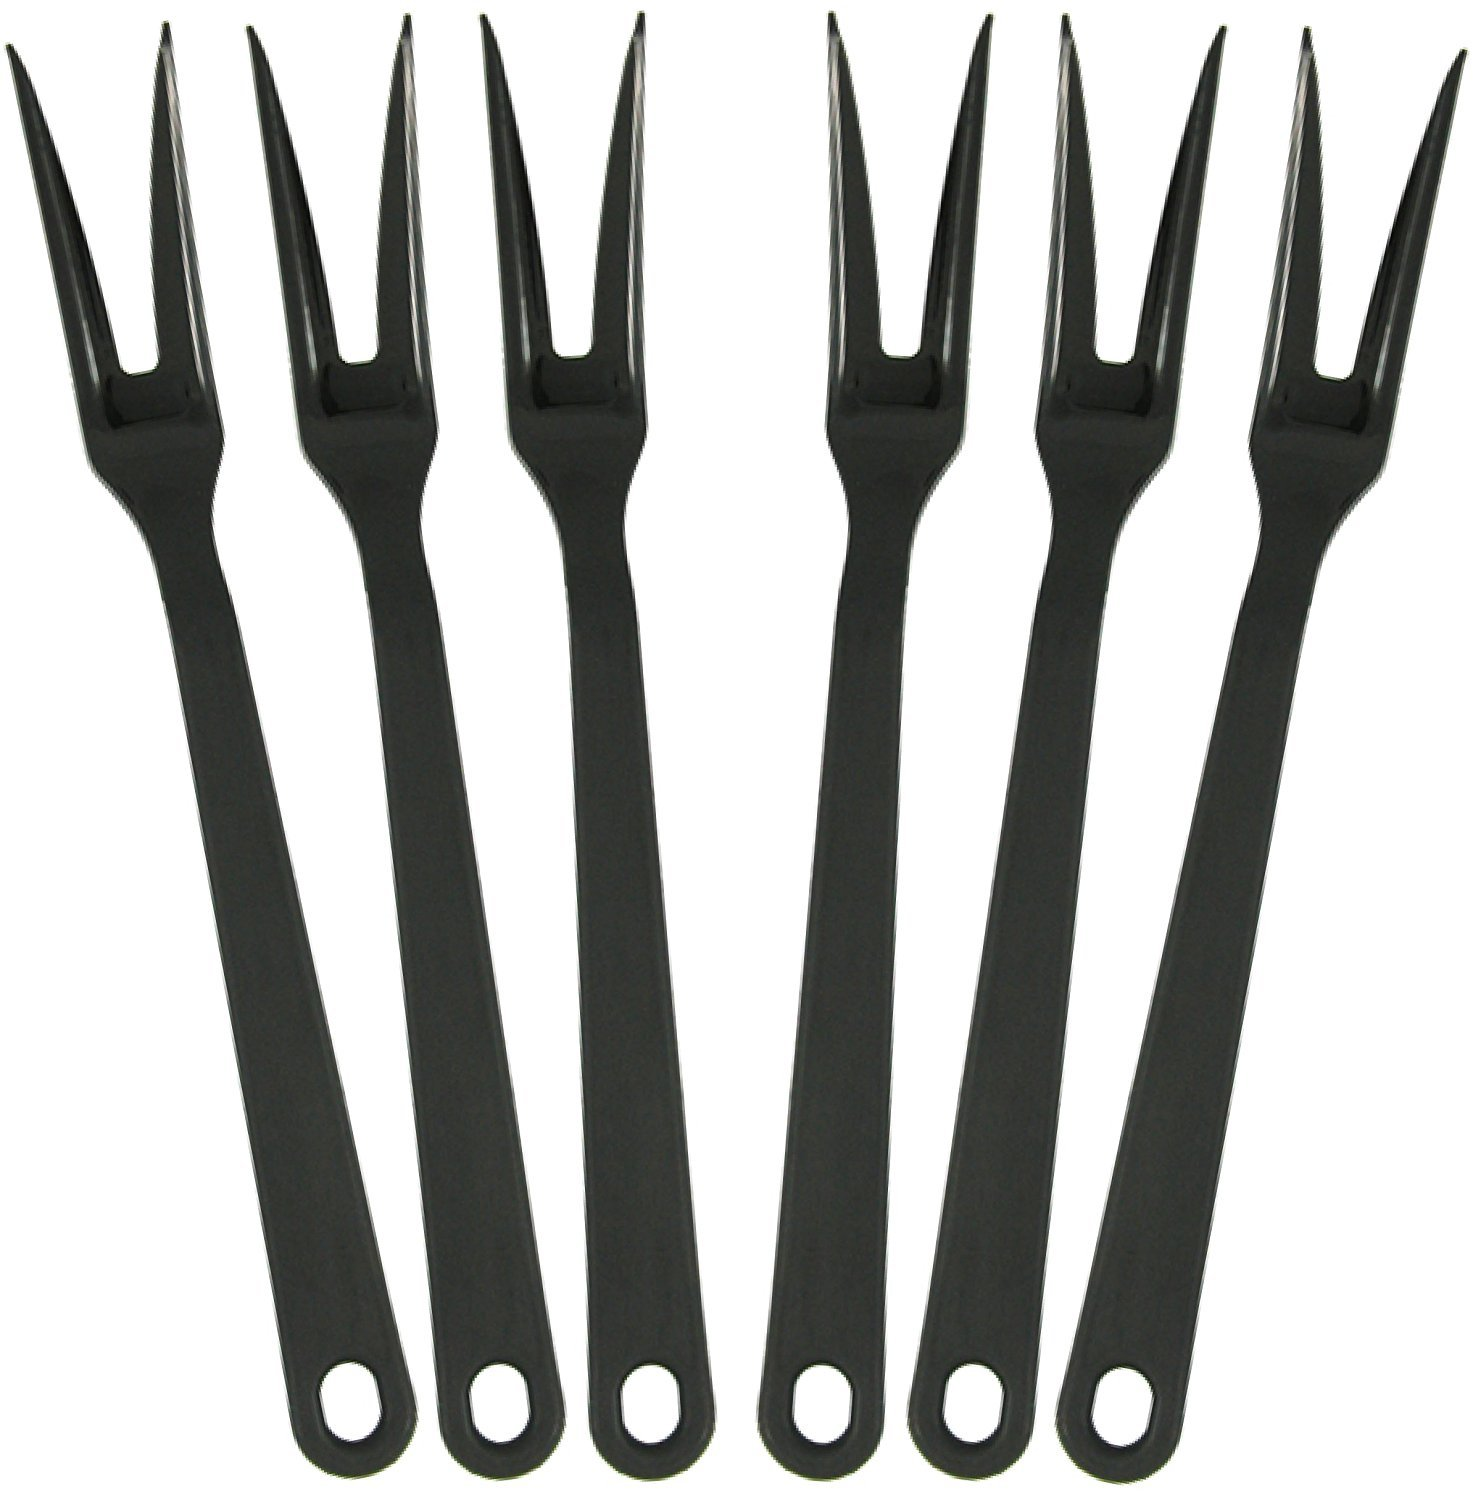 Pack of 6 Tailor Made Products Nylon Turner Black TKN10351